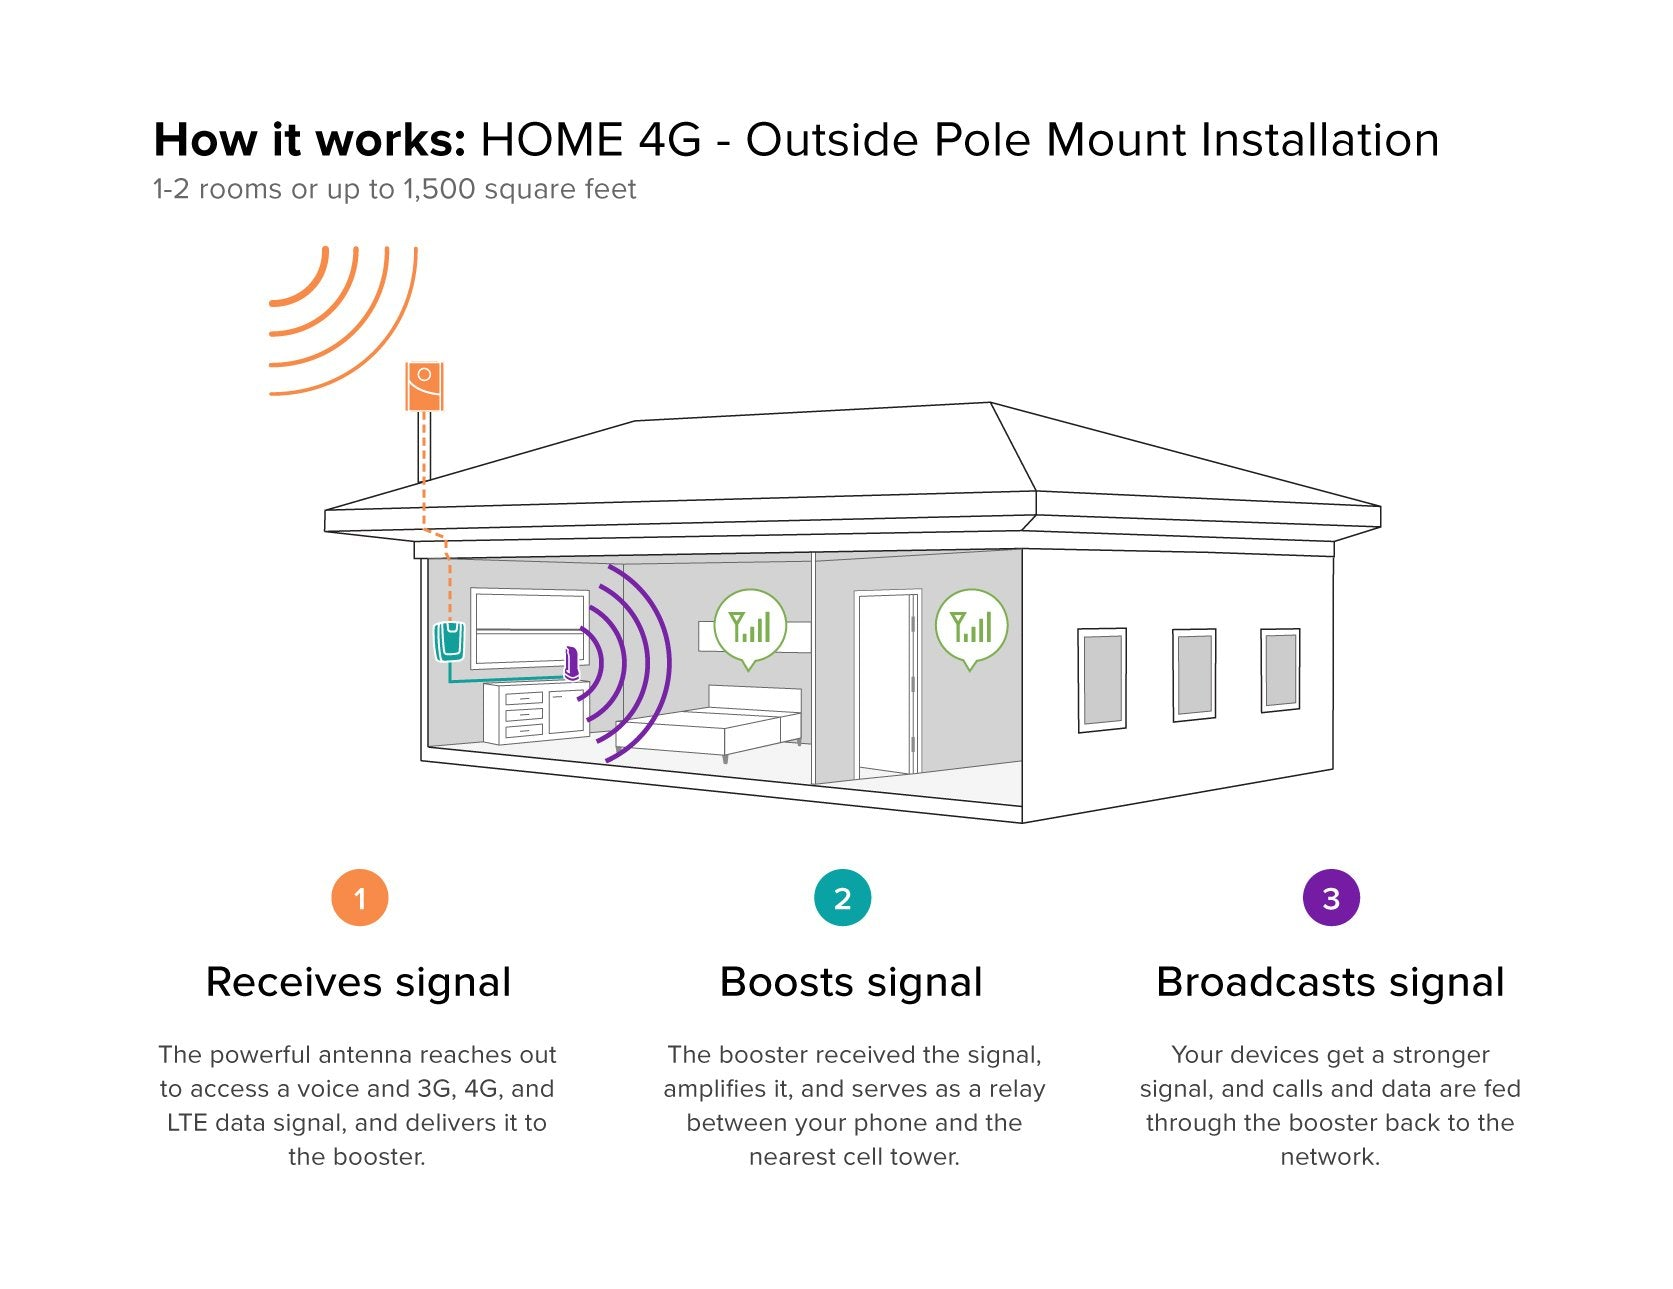 Weboost Home 4g Cell Phone Booster For 470101 At Amp T Wireless Network Diagram